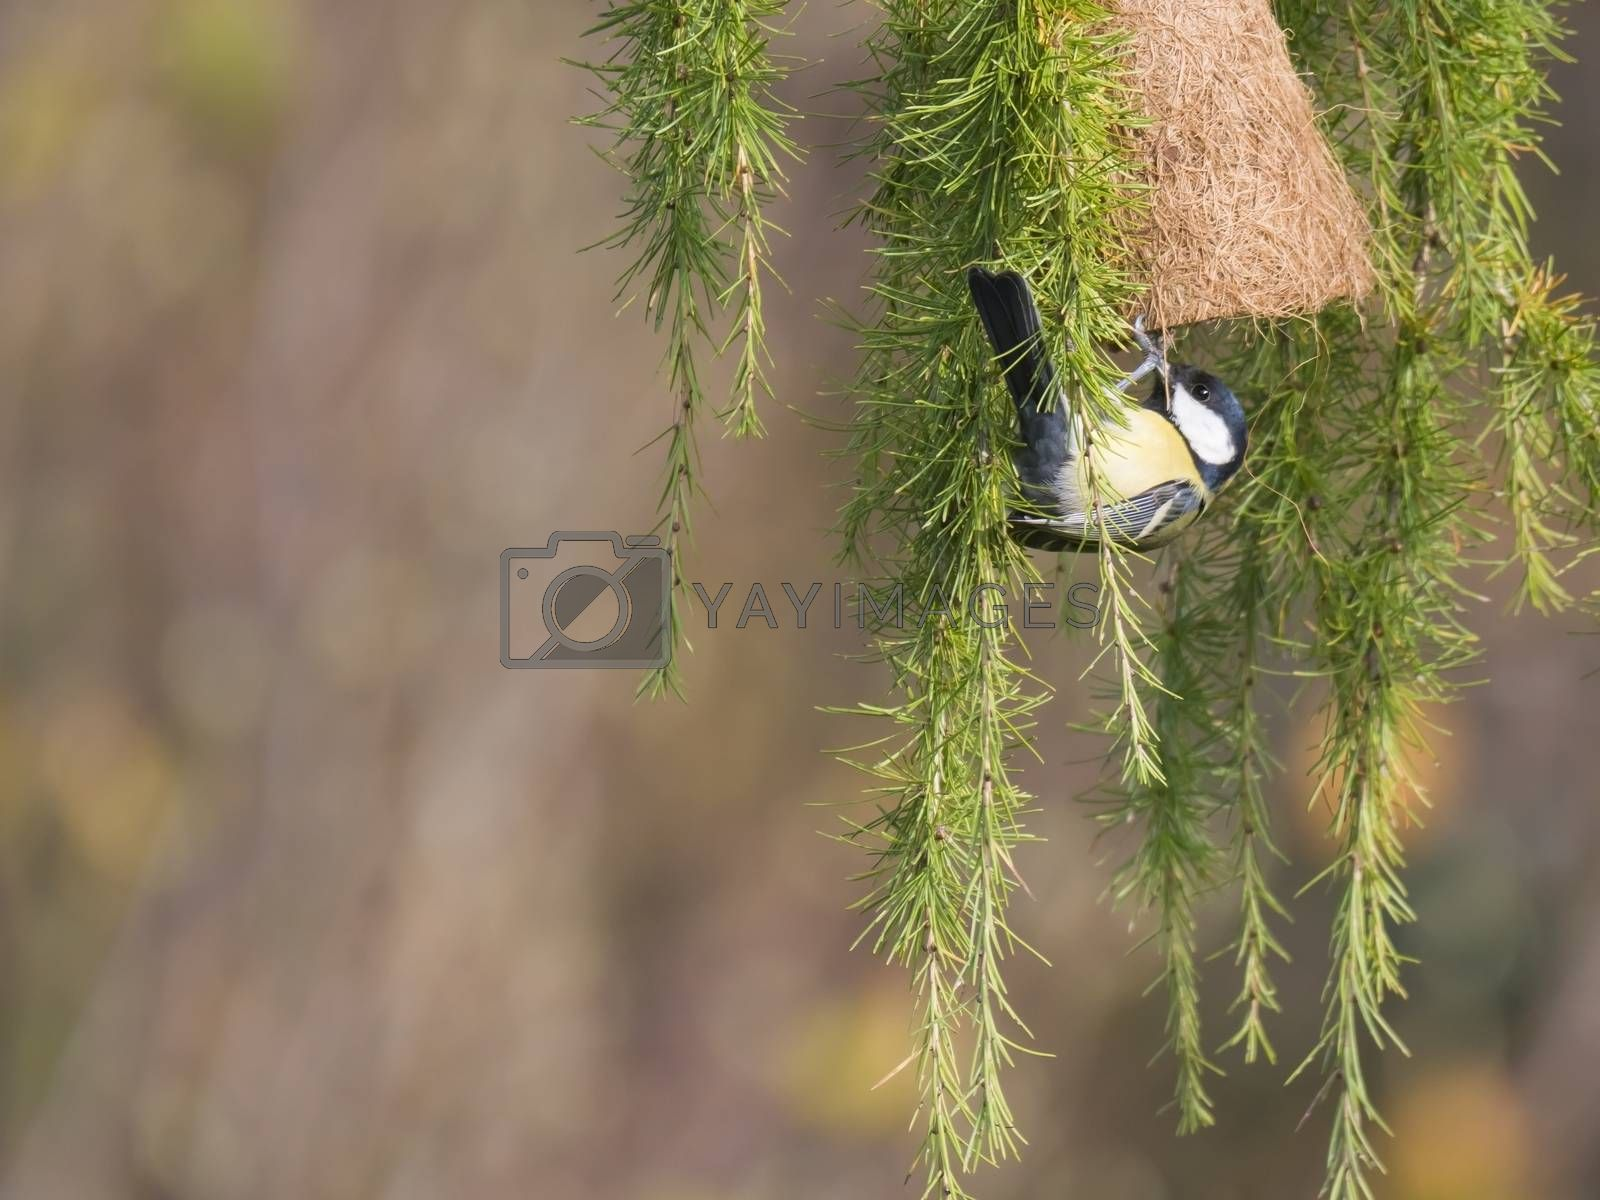 Close up Great tit, Parus major bird perched on lush geen larch tree branch with feeder, bokeh background, copy space..